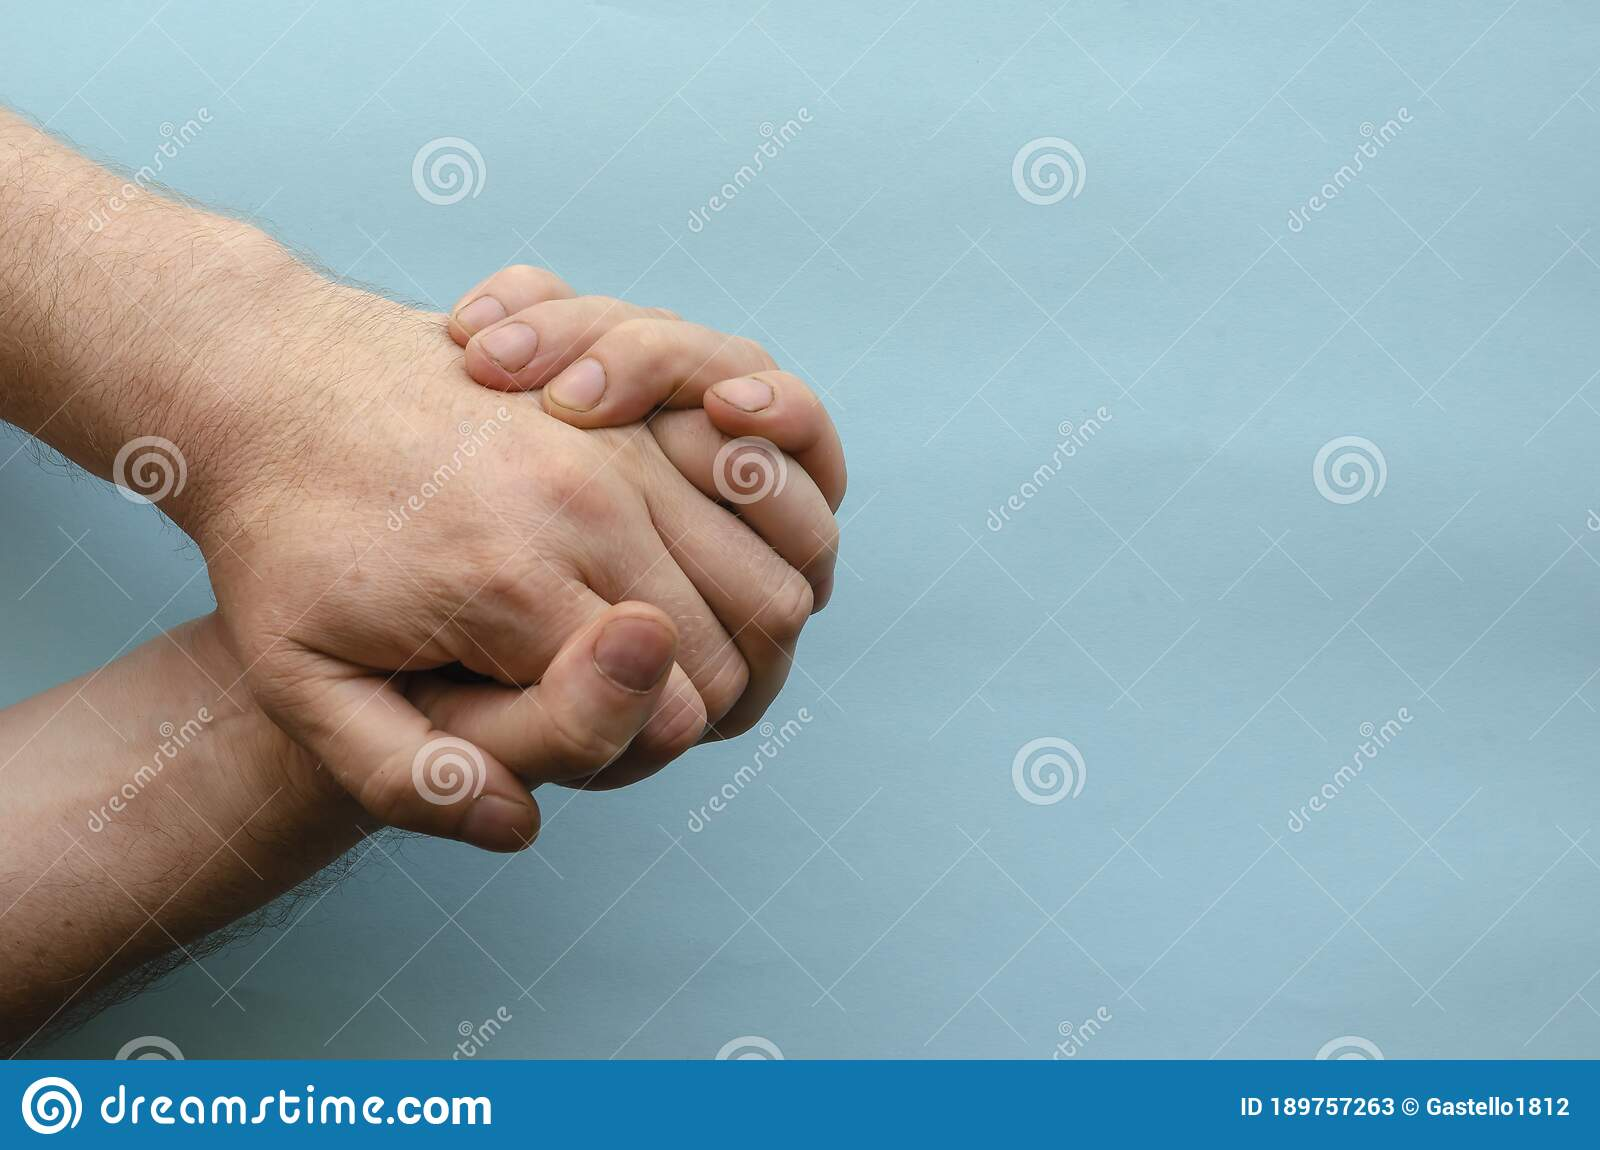 Interlocked Fingers Of Two Male Hands On Blue Background